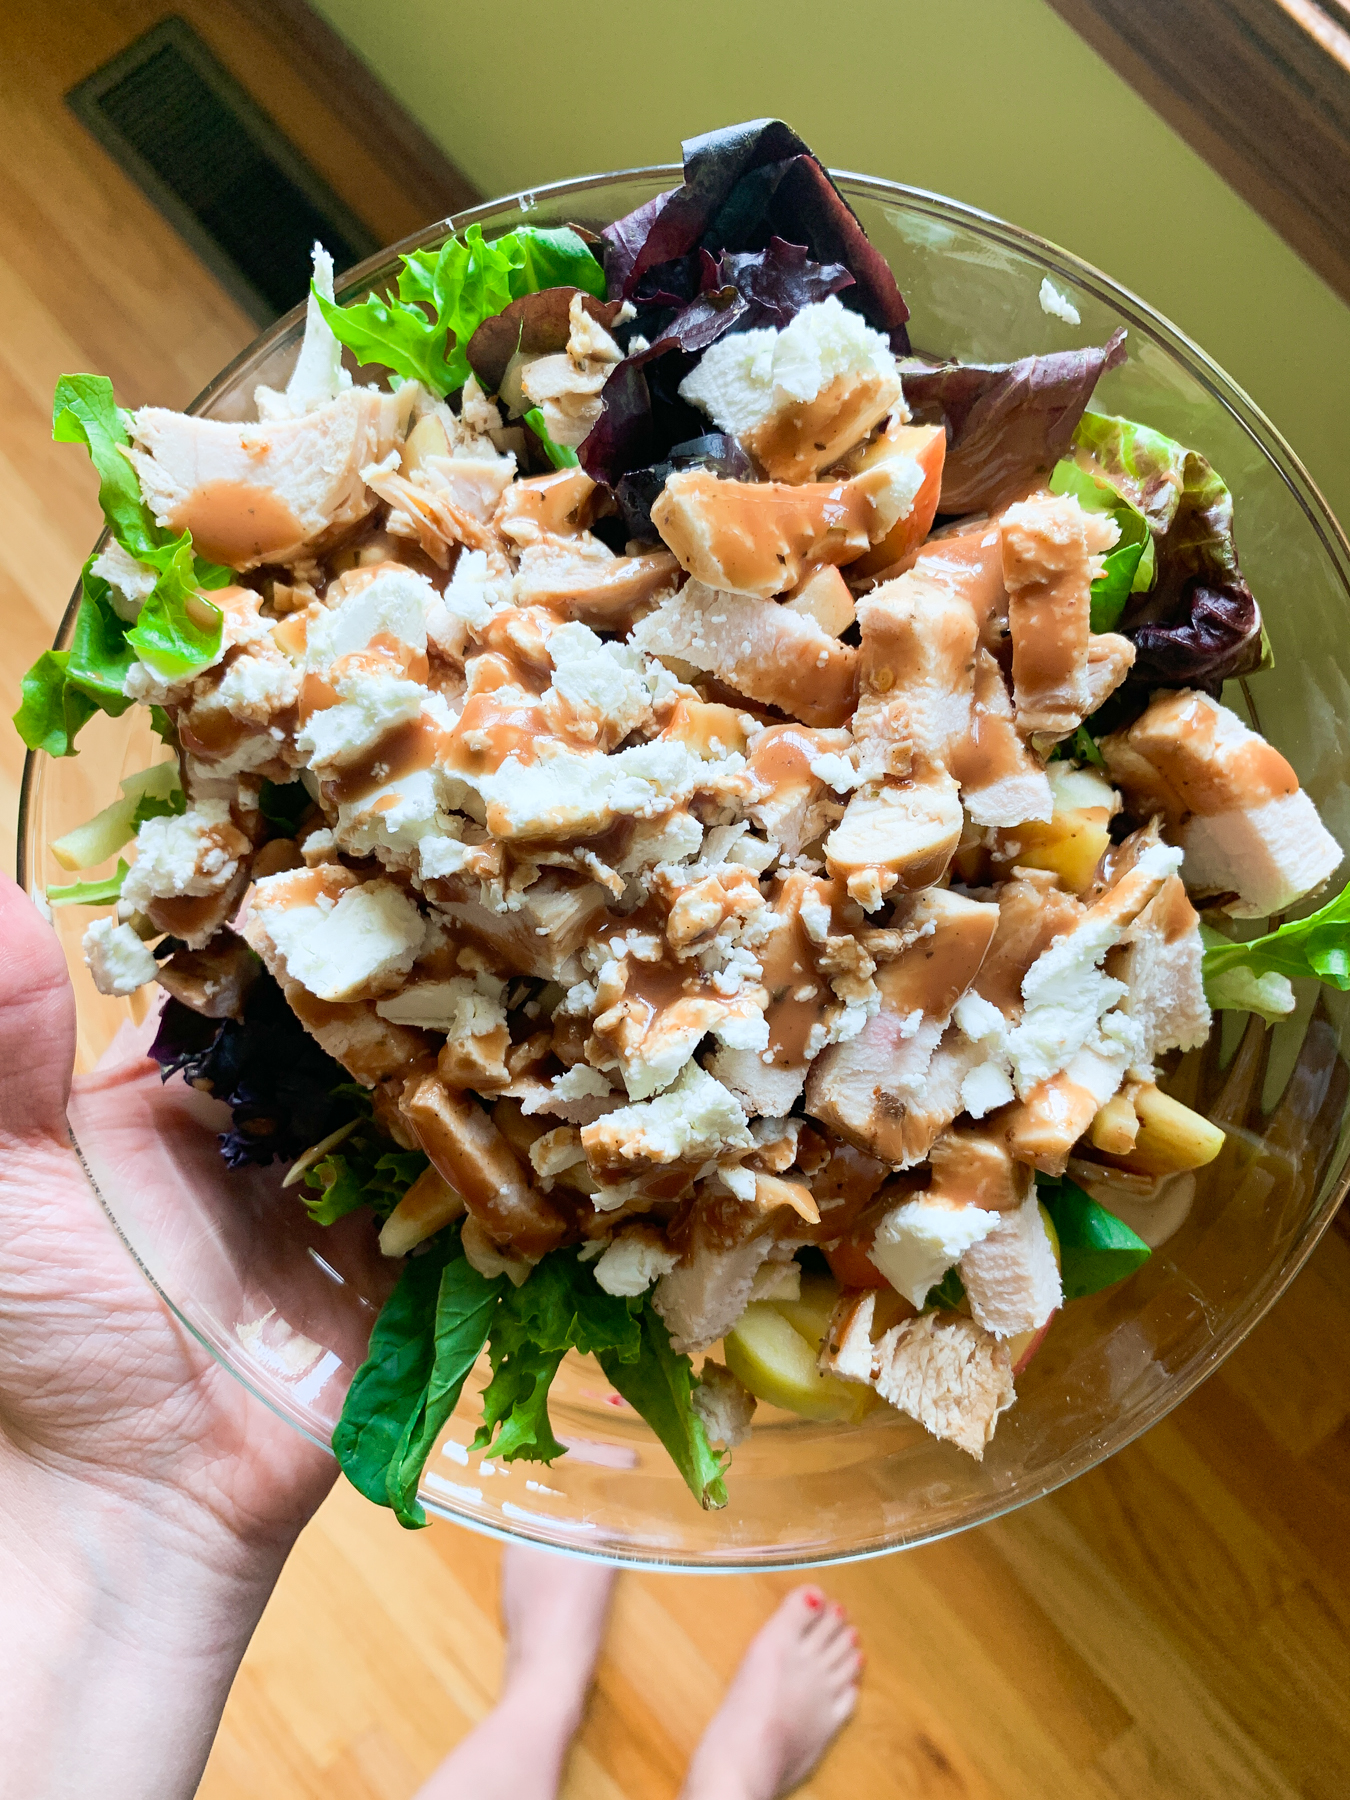 mixed green salad with apples, goat cheese, almonds, chicken, and balsamic